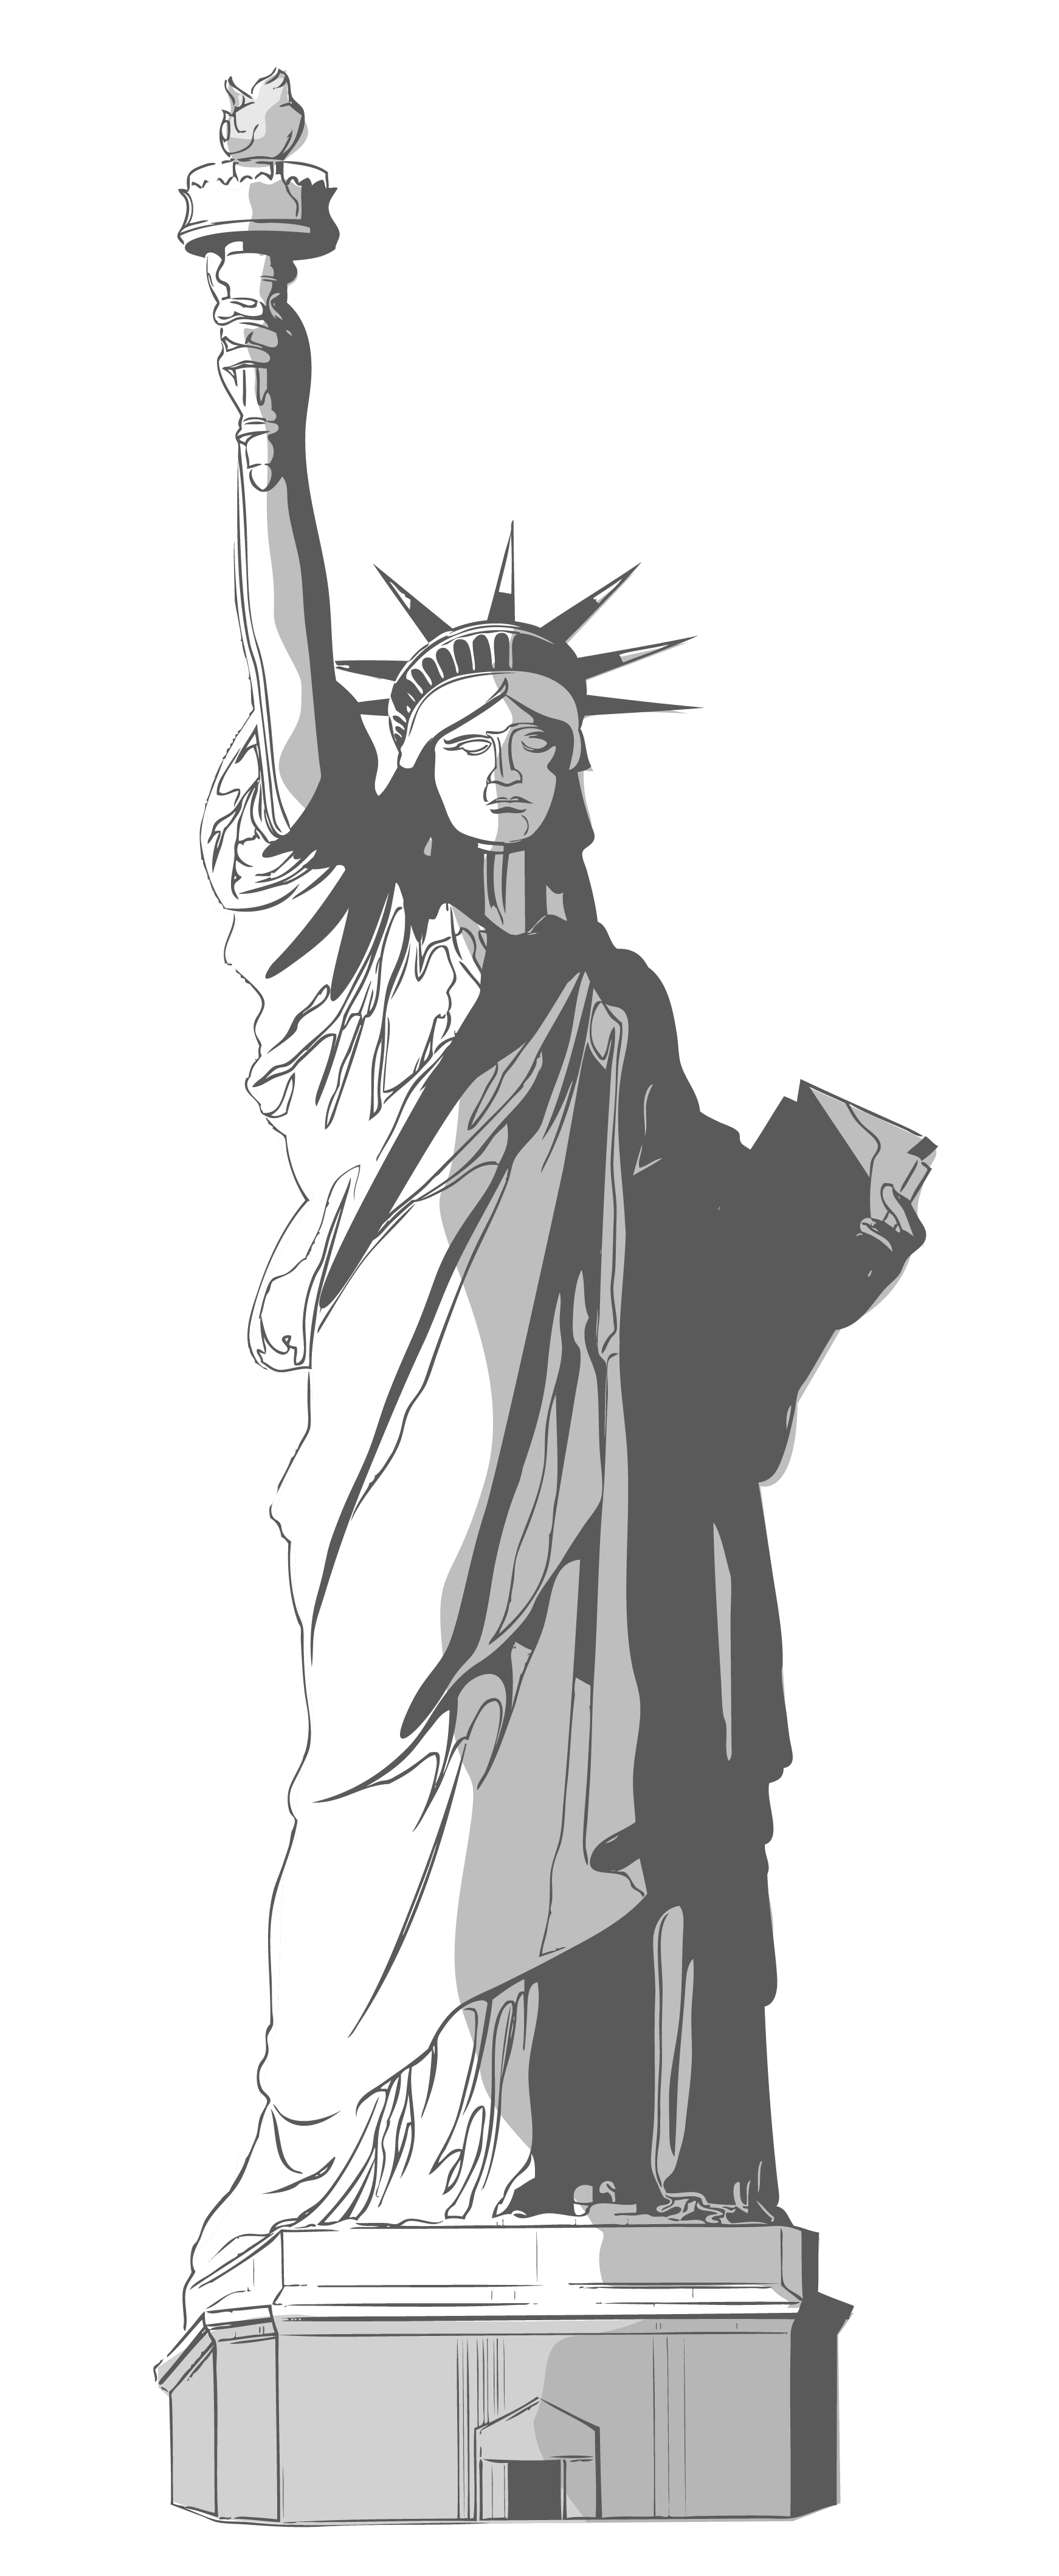 Statue of liberty crown clipart royalty free download 28+ Collection of Statue Of Liberty Clipart Free | High quality ... royalty free download